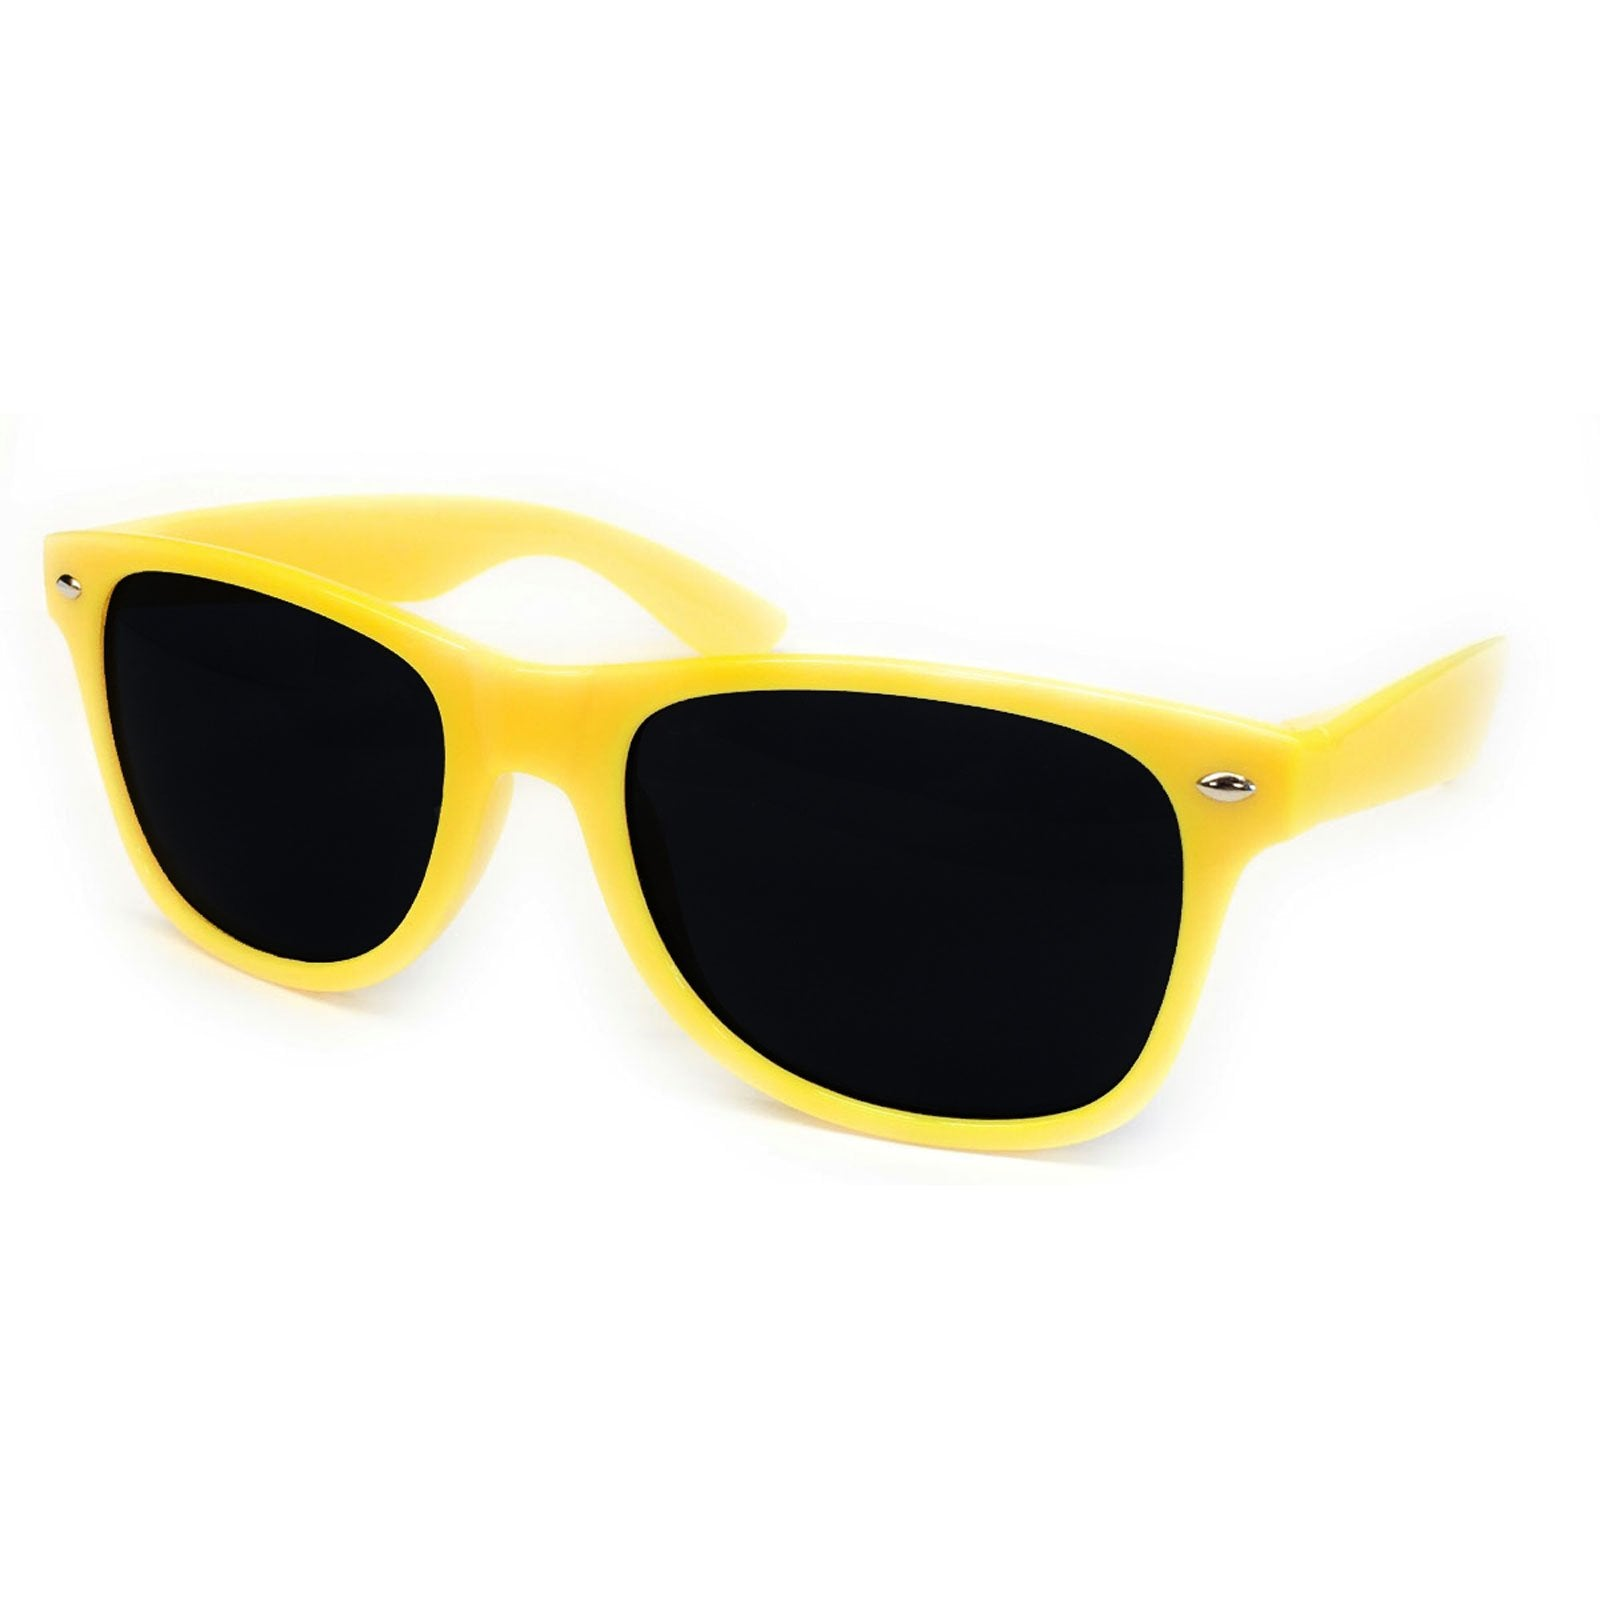 Wholesale Kids Classic Sunglasses - Yellow Frame, Black Lens